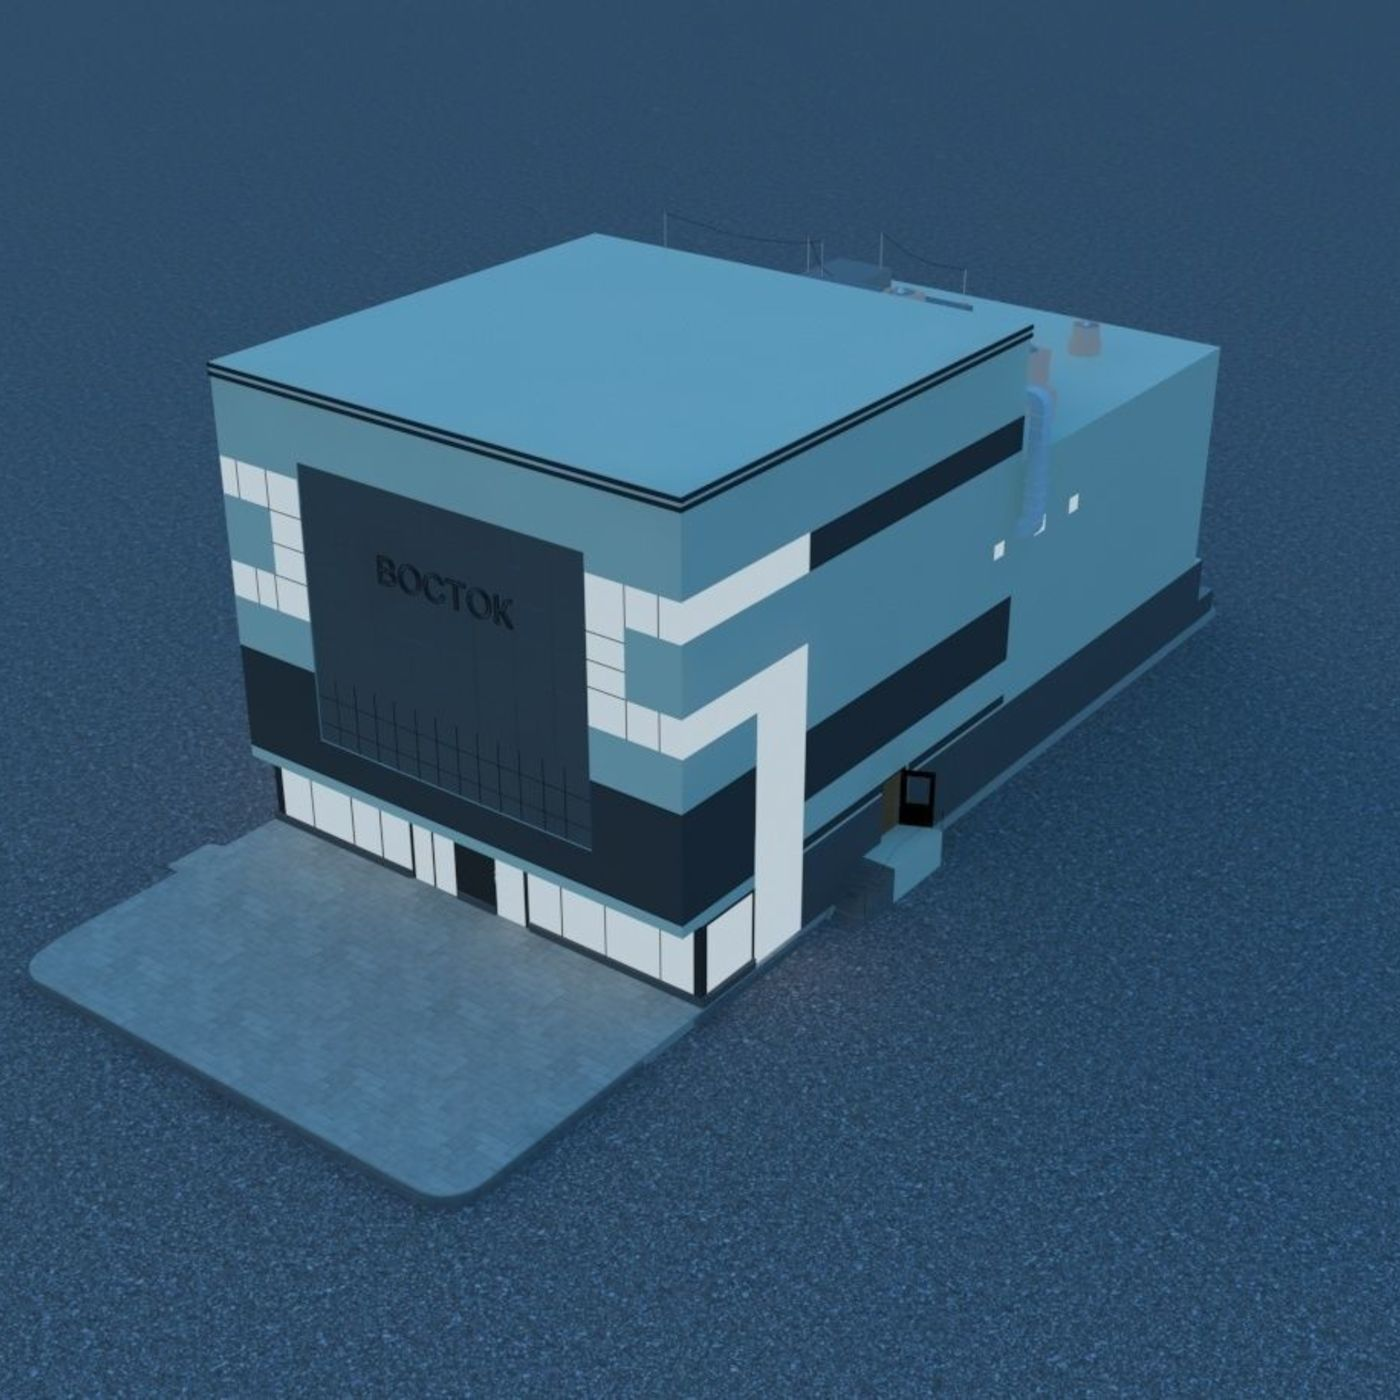 shopping center East 3D model